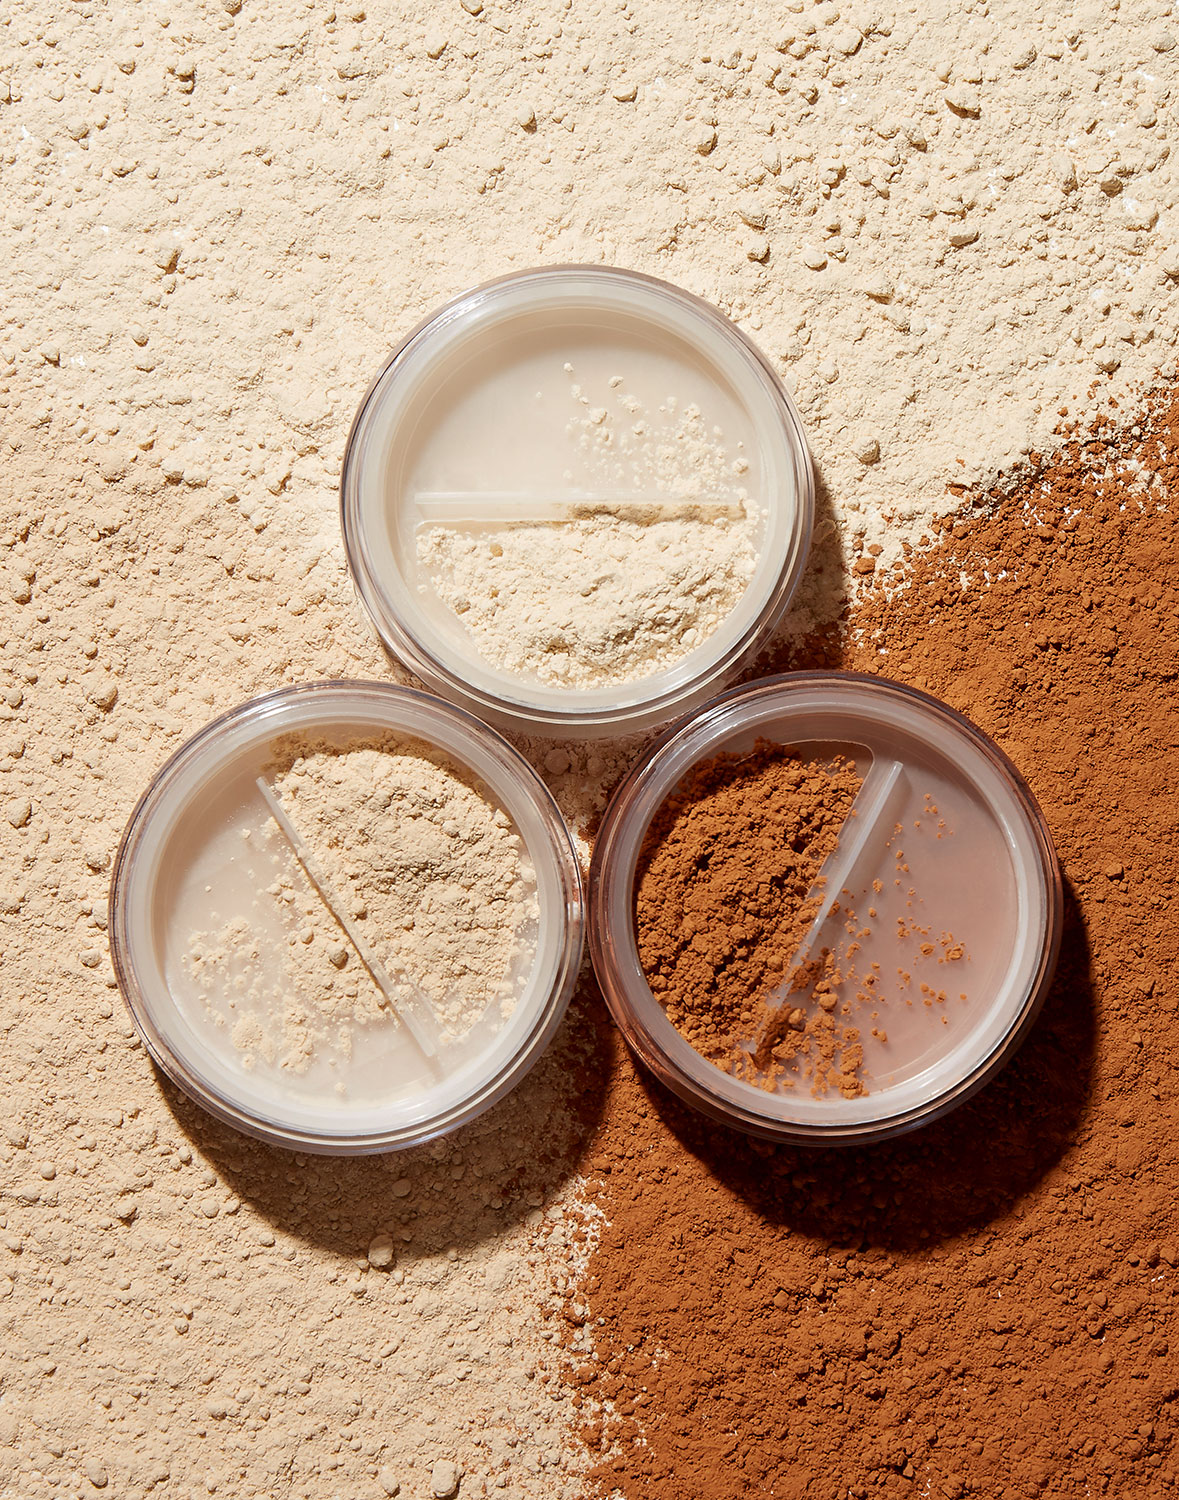 0619_Social_MatteSettingPowder_Group